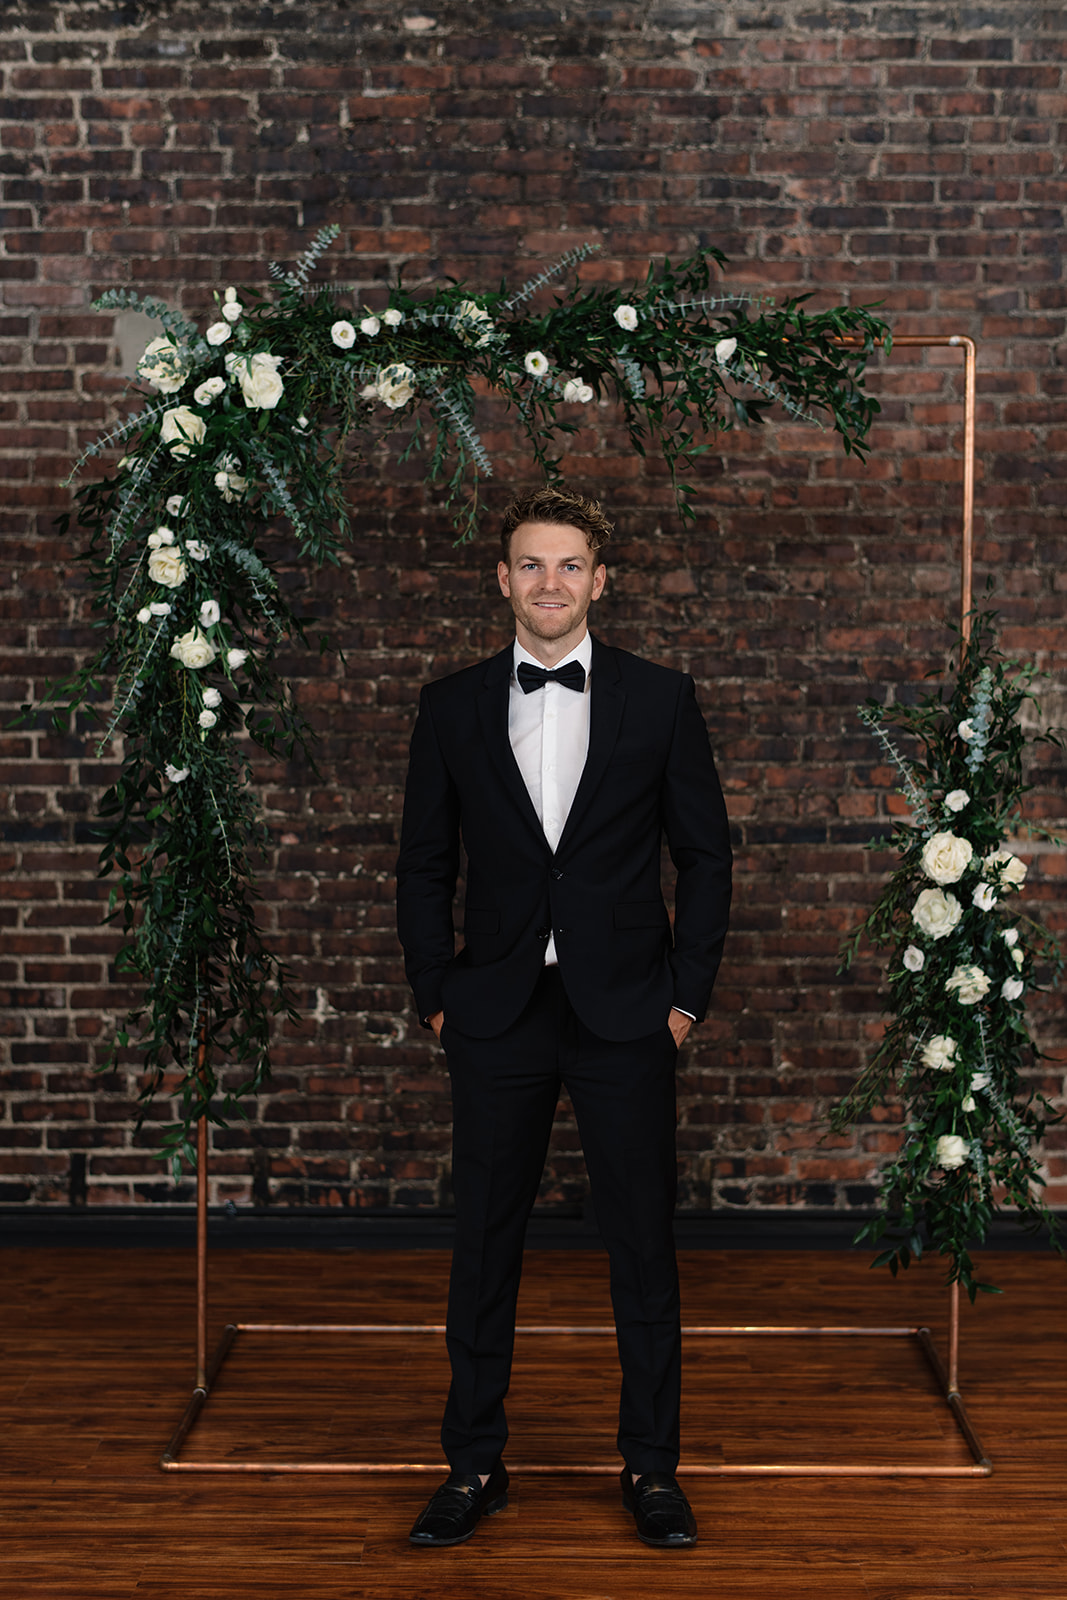 groom in tux under white rose copper arbor olympic south side theater weding venue anne and ellis events